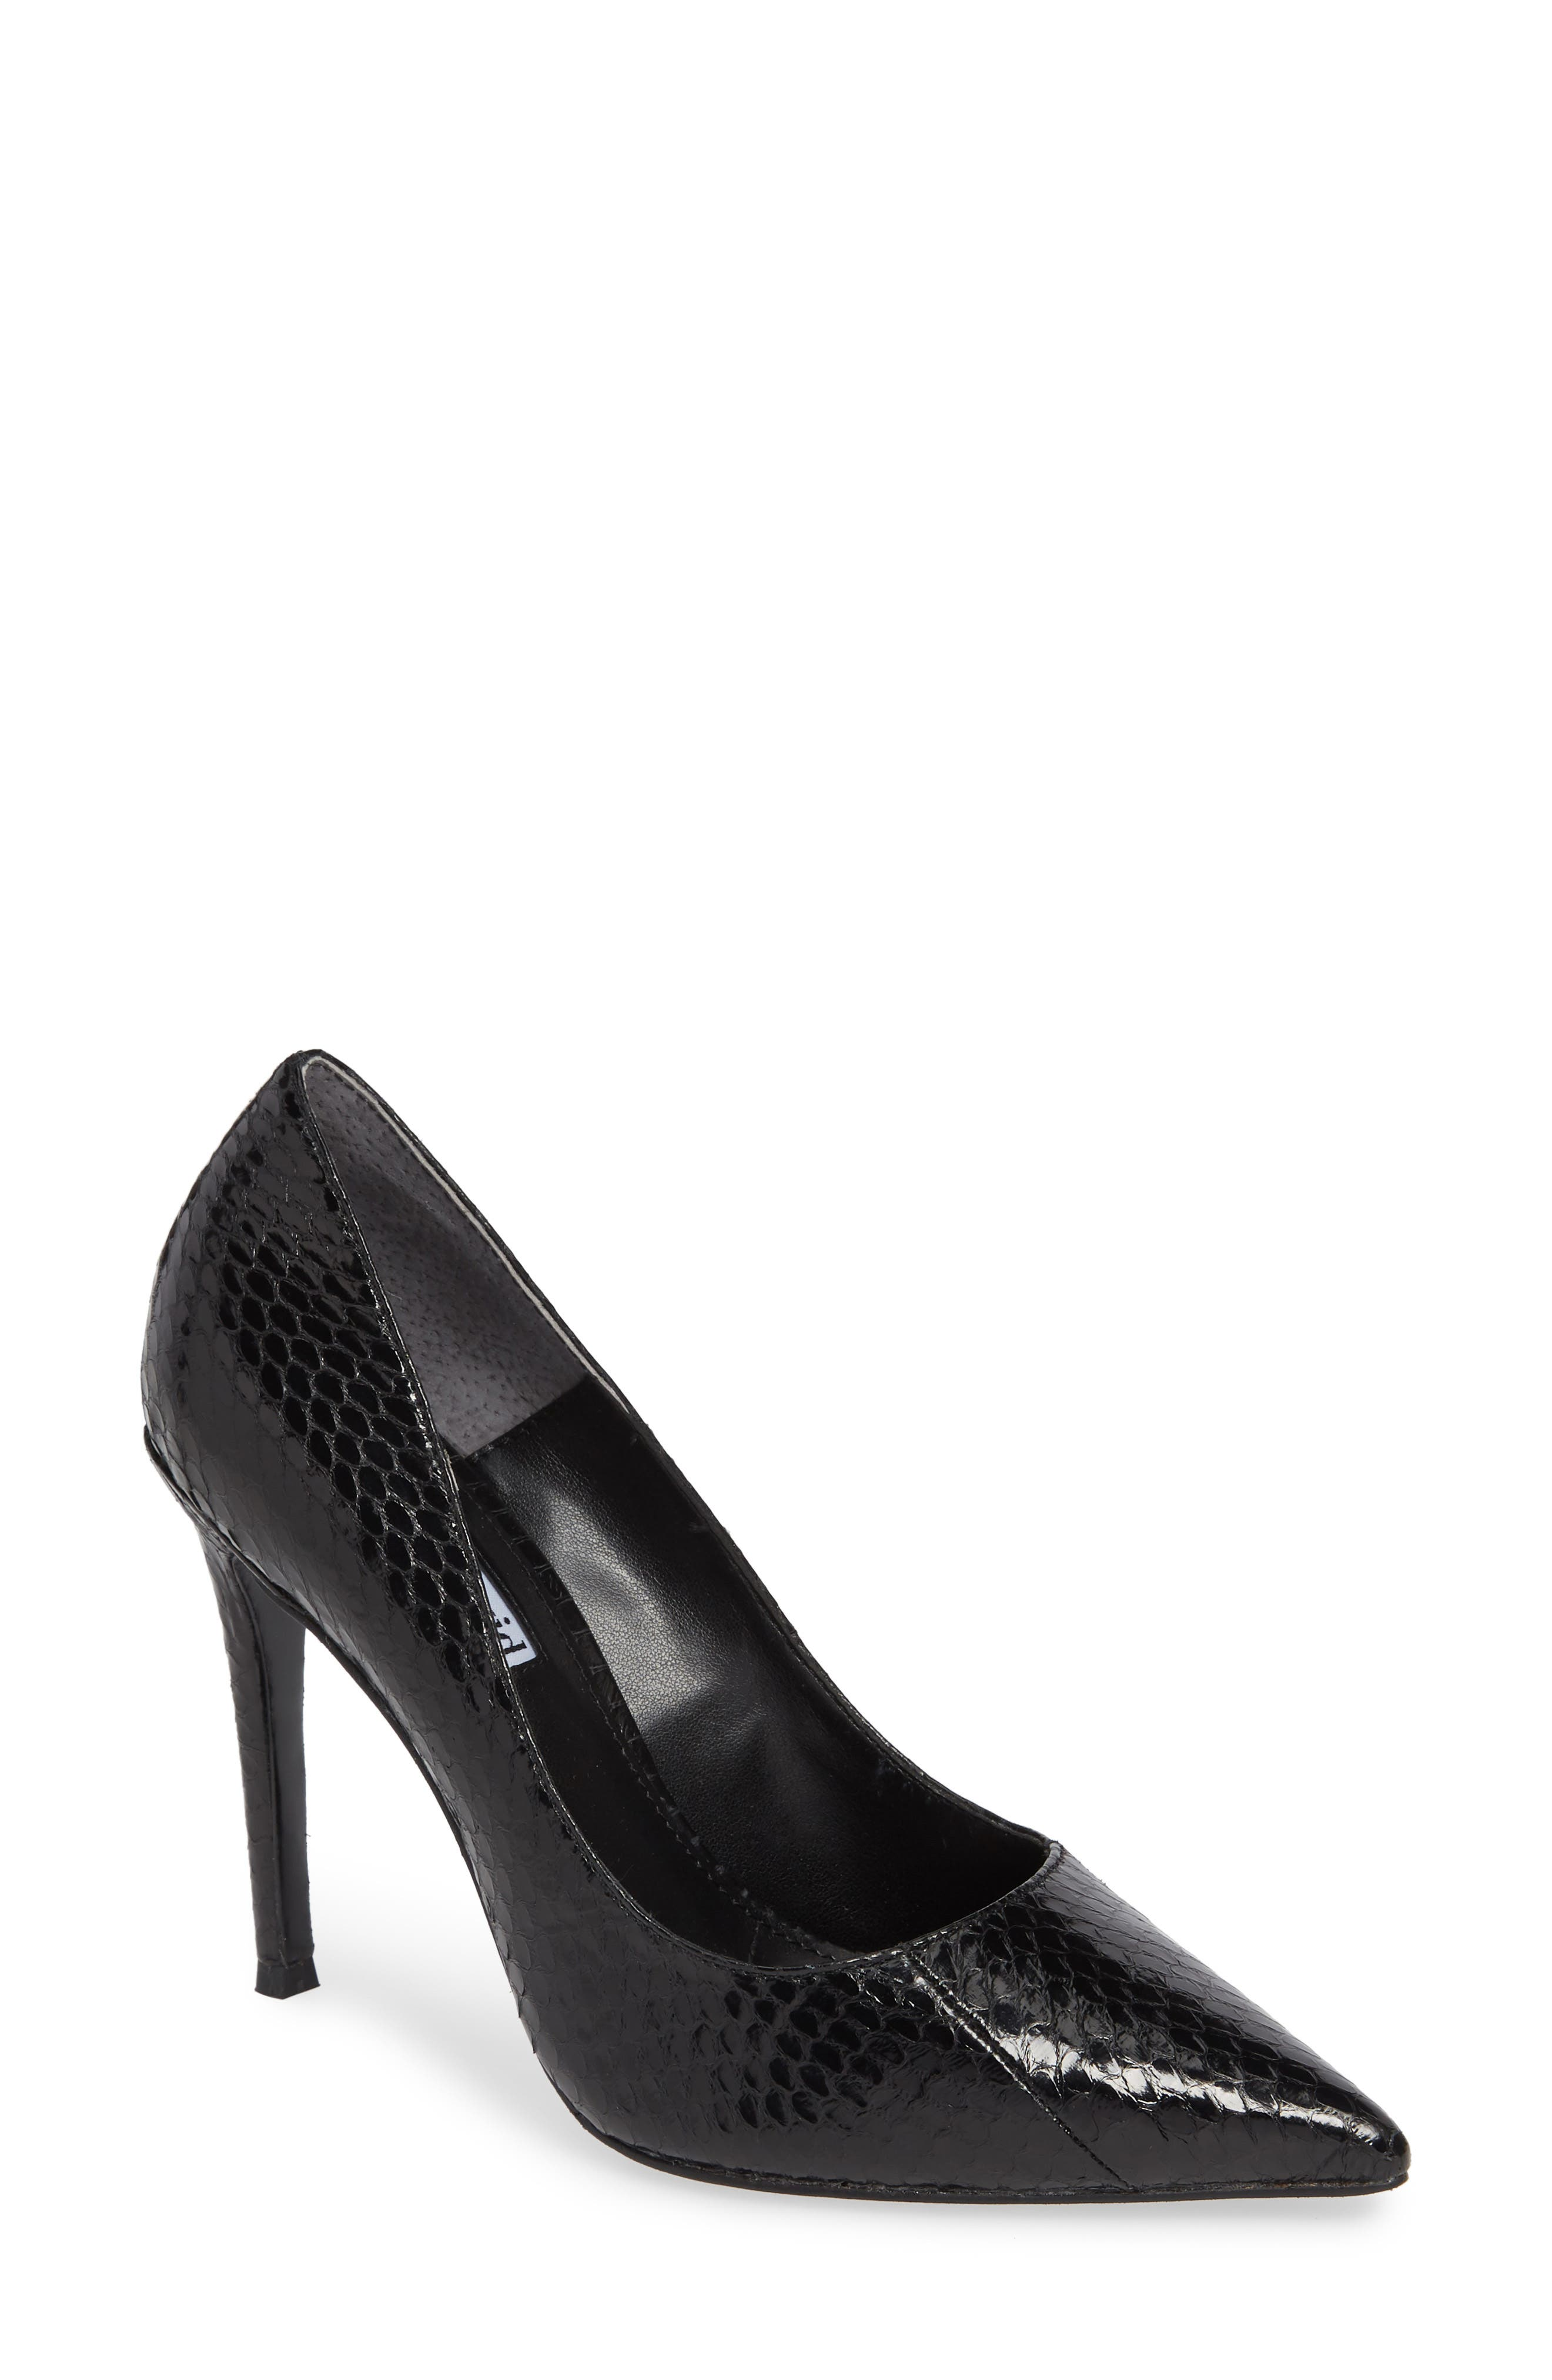 Calessi Pointy Toe Pump,                             Main thumbnail 1, color,                             BLACK SNAKE PRINT LEATHER